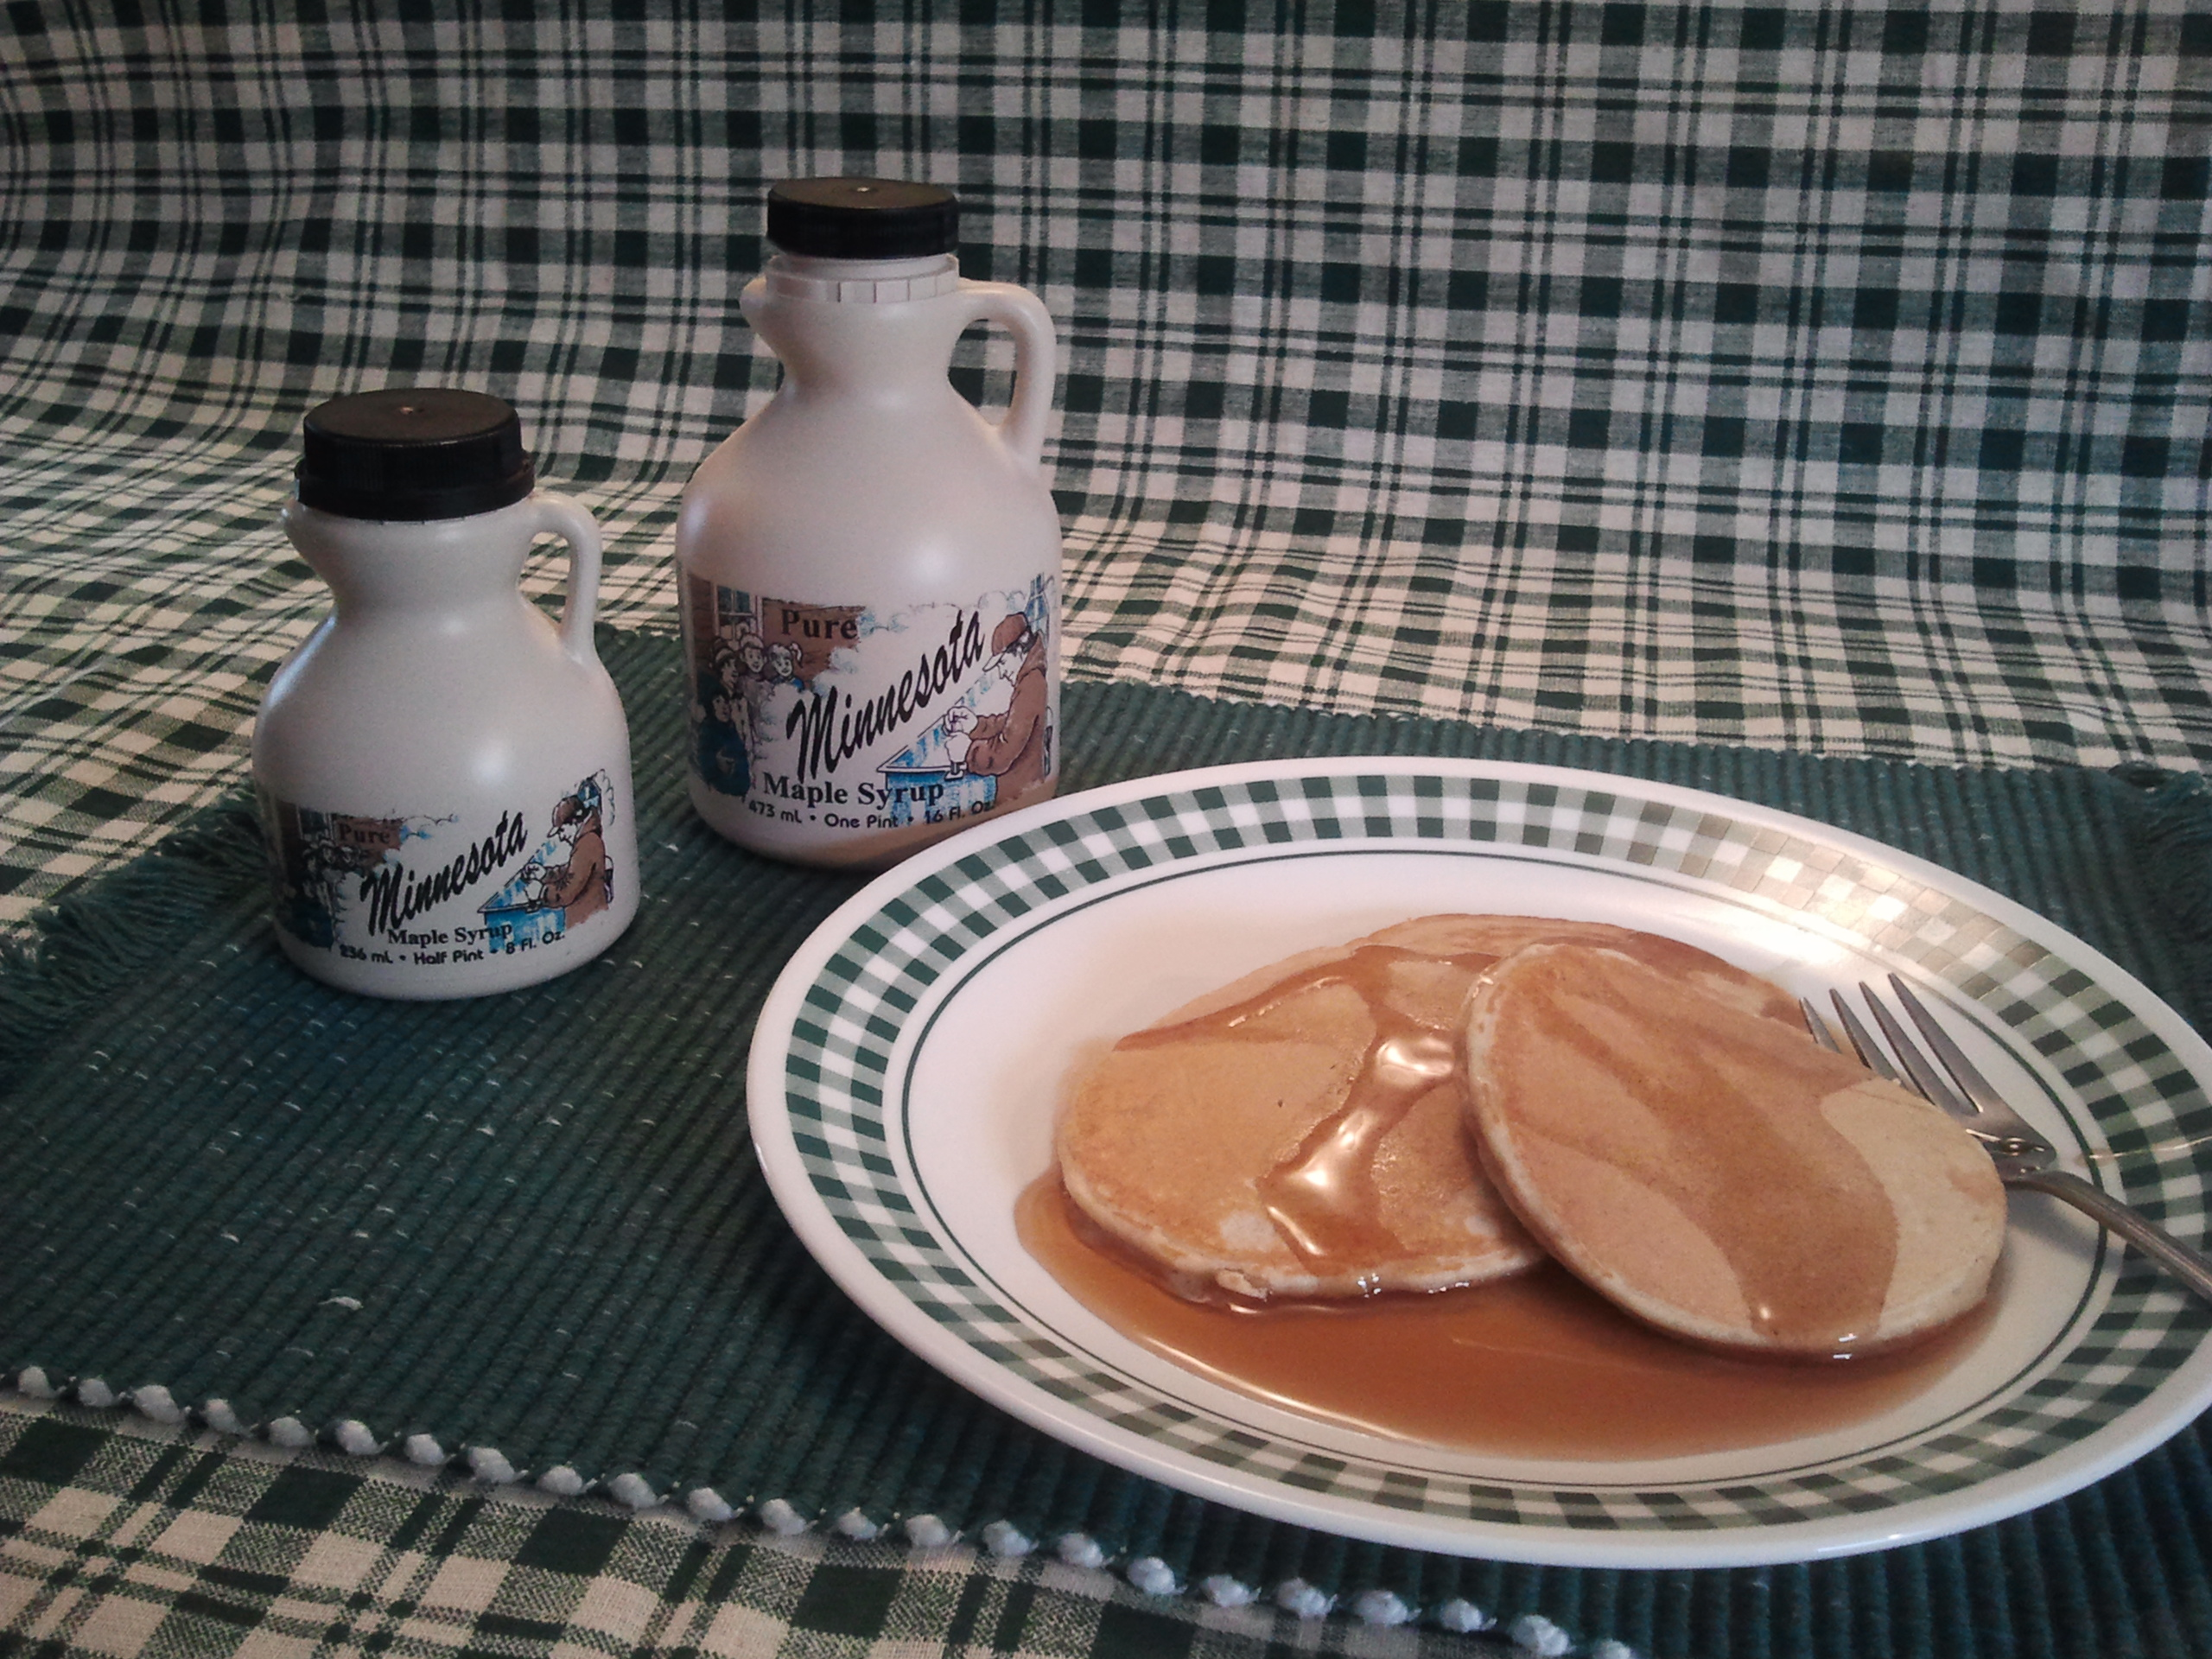 MAPLE SYRUP from Treasured Haven Farm